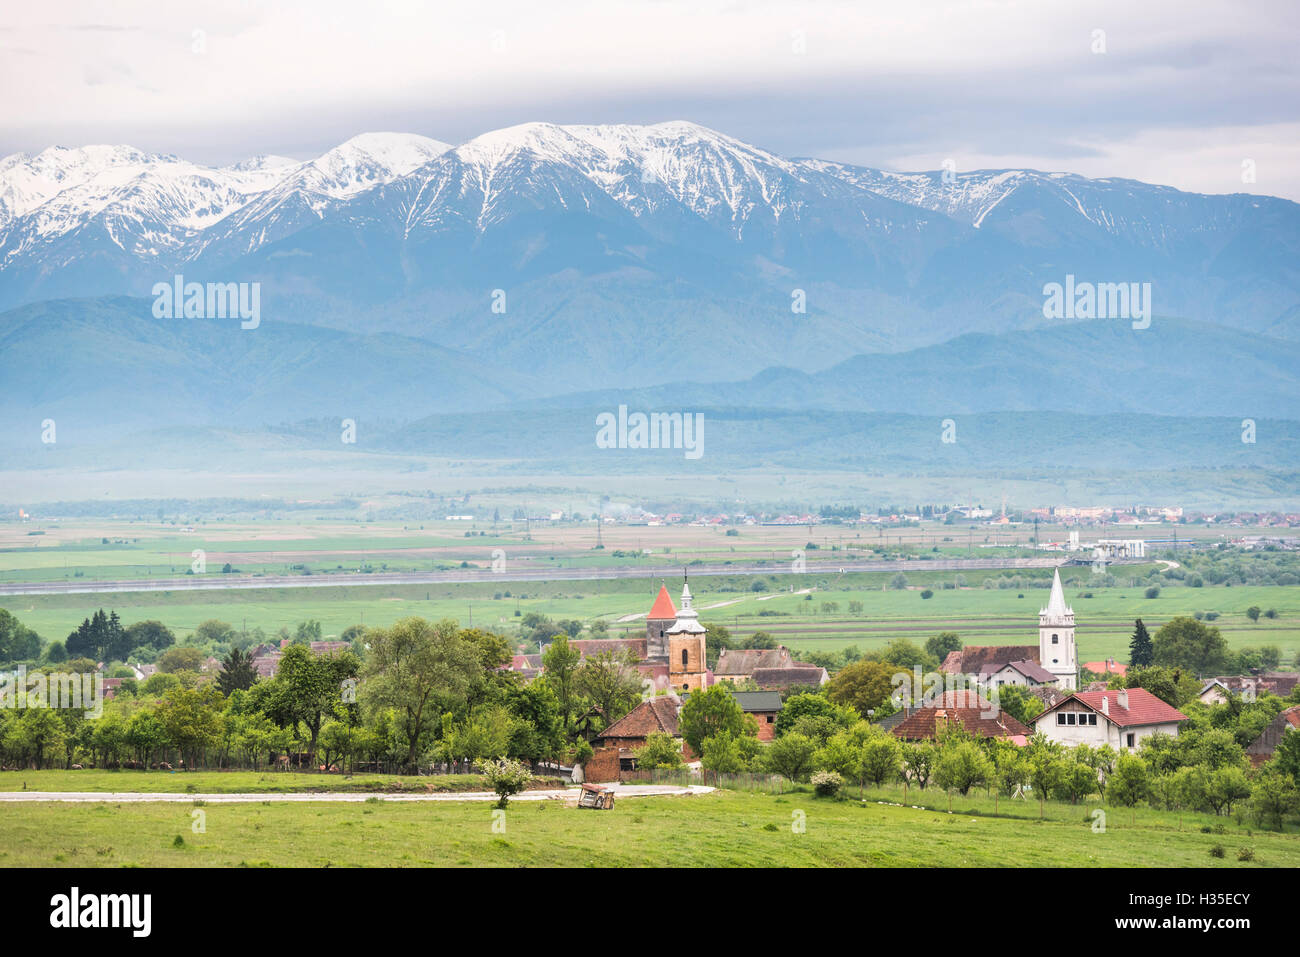 Countryside near Sibiu, Transylvania, Romania - Stock Image